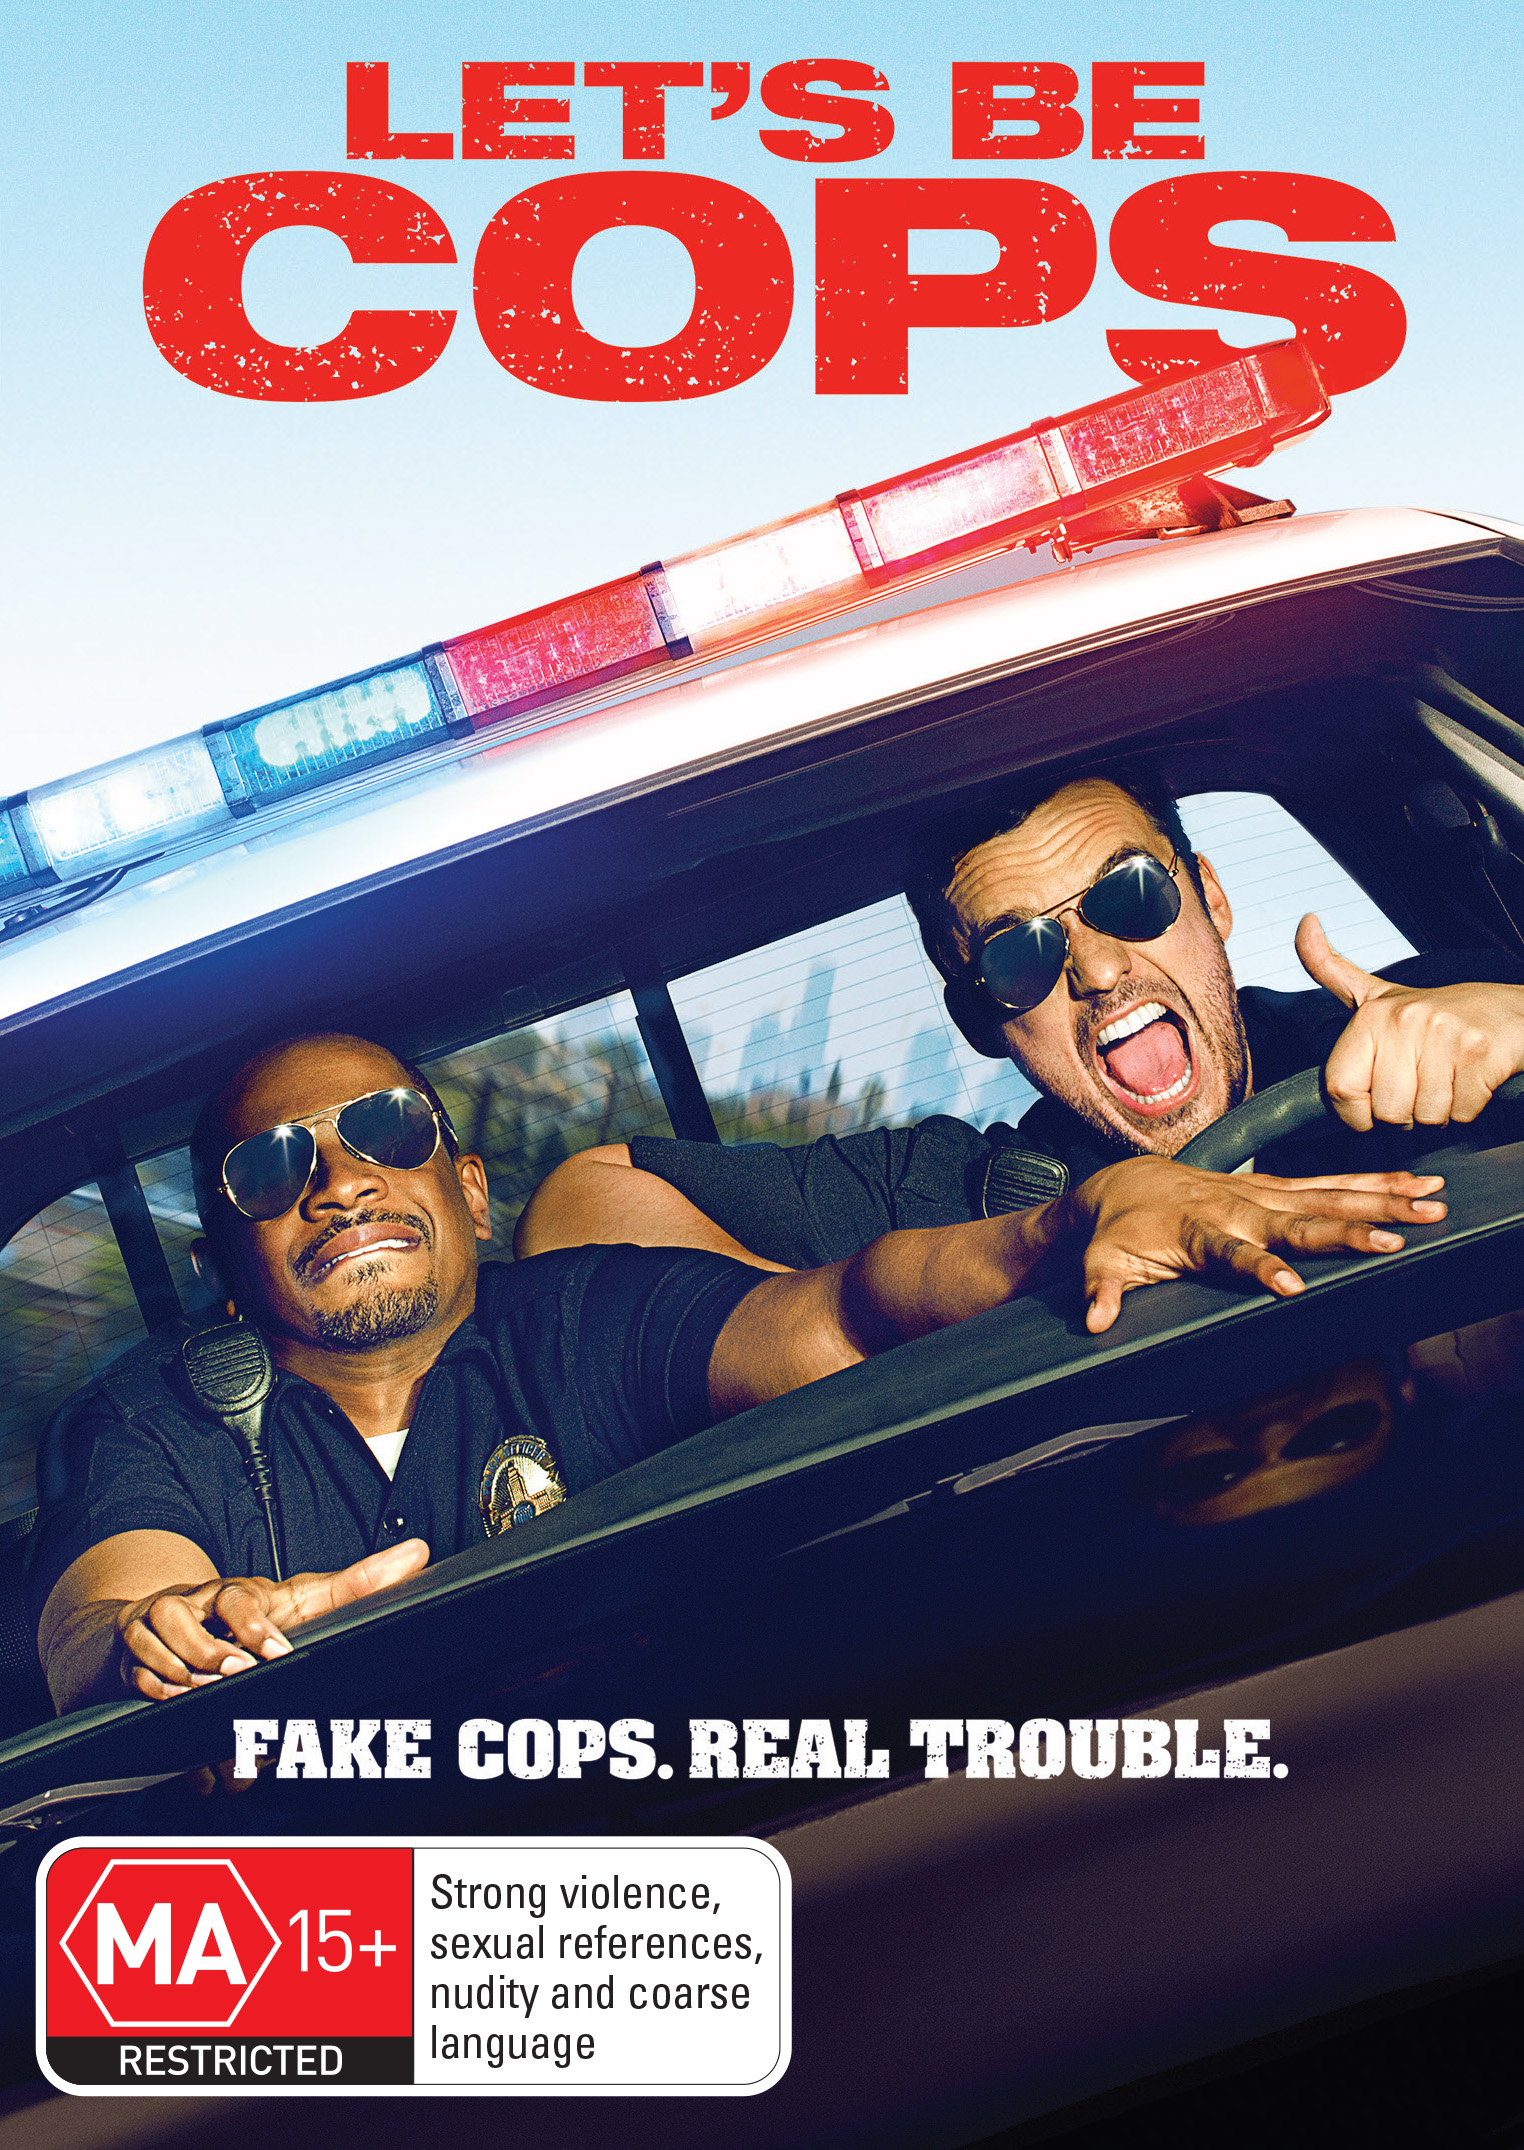 LET'S BE COPS Digital HD